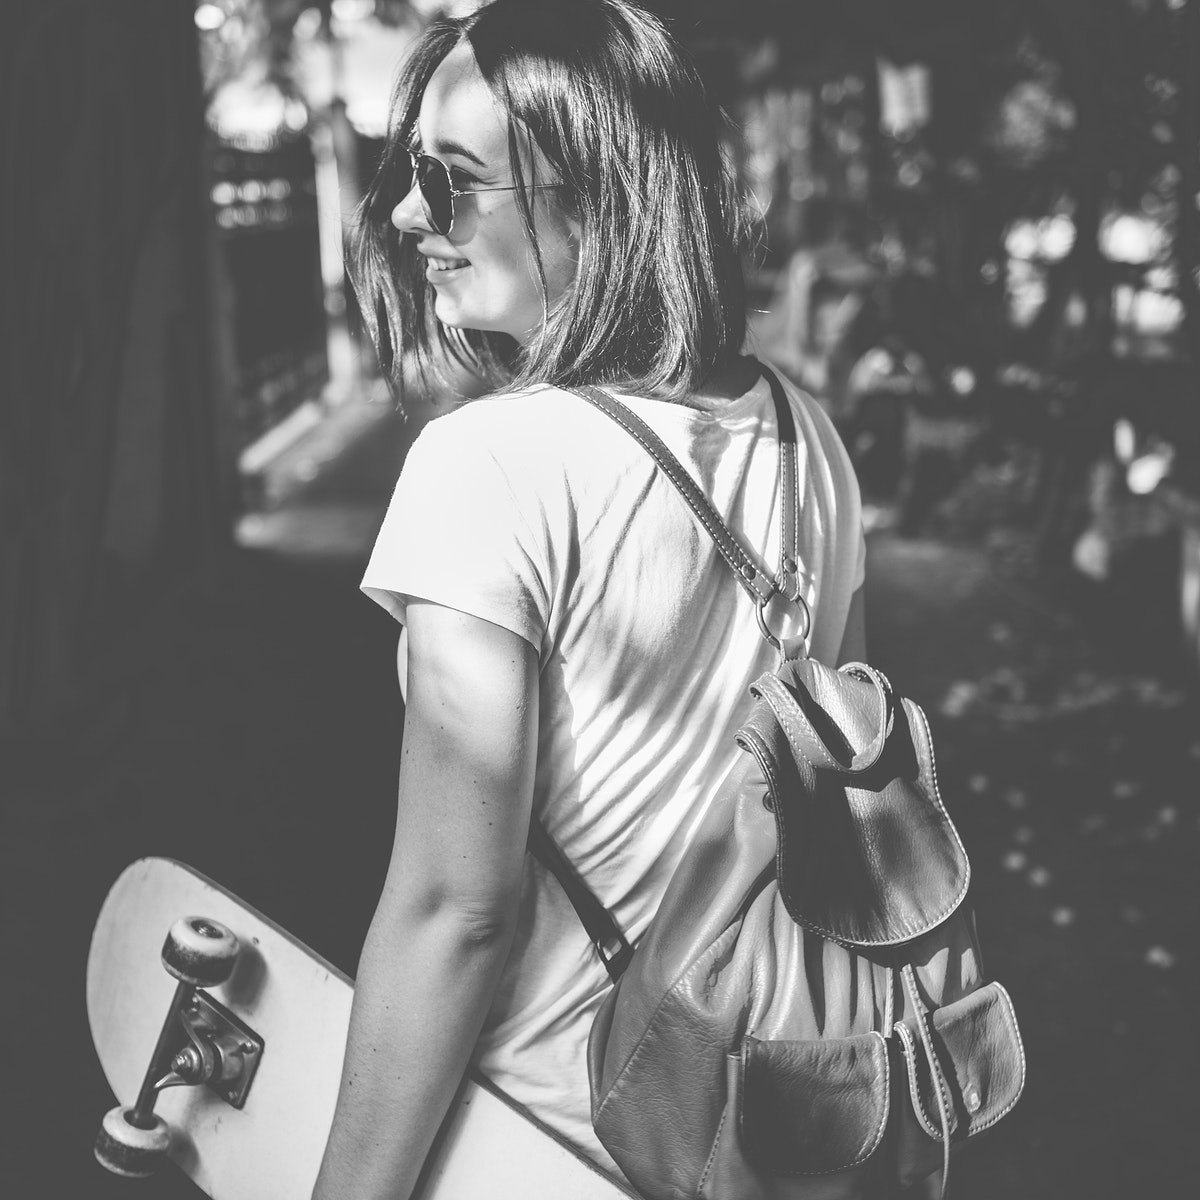 Woman holding skateboard outdoors grayscale